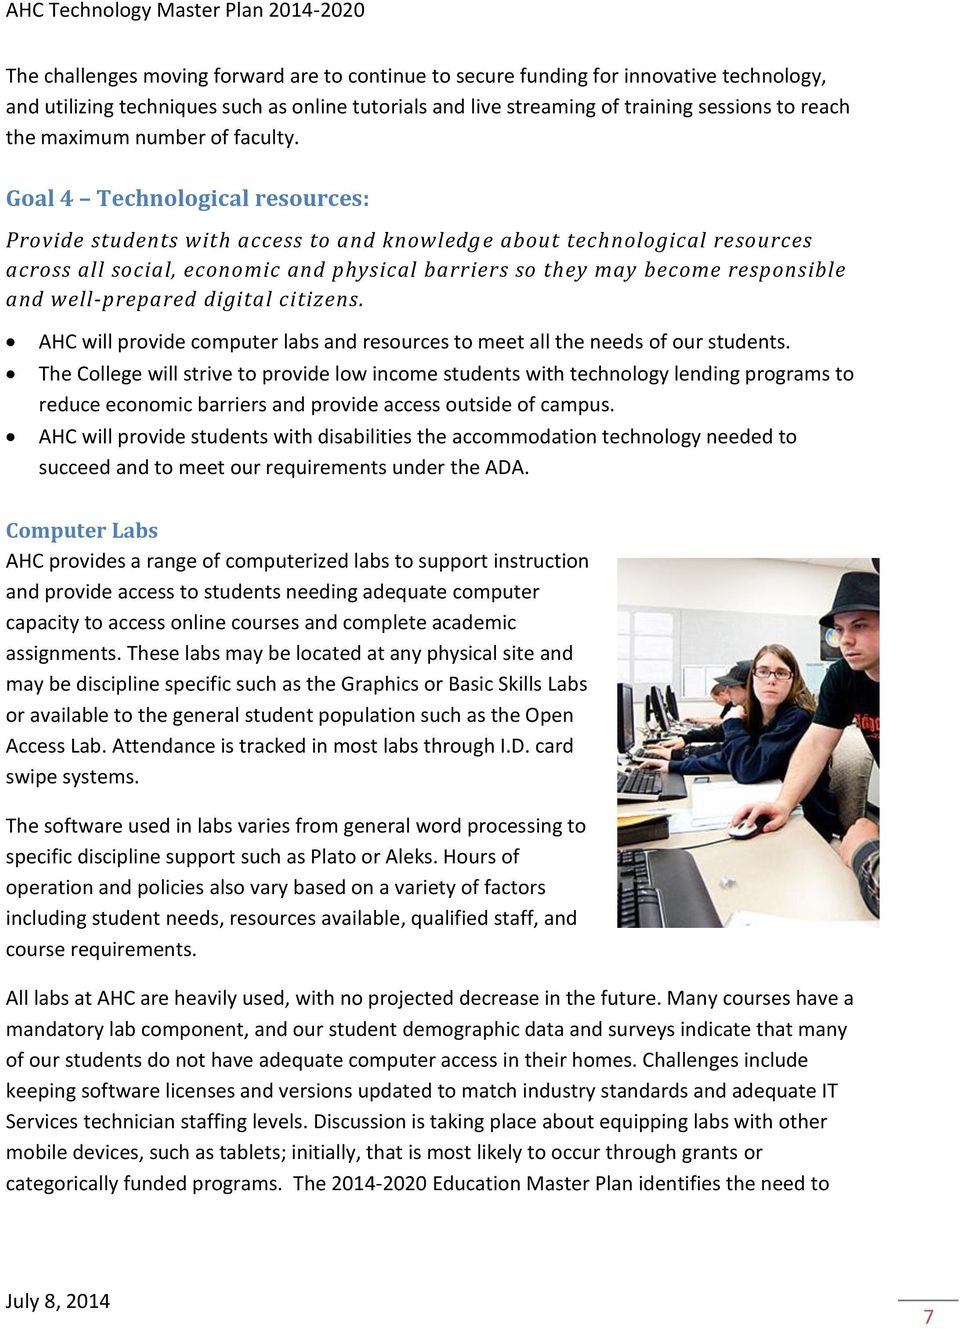 Goal Technological resources: Provide students with access to and knowledge about technological resources across all social, economic and physical barriers so they may become responsible and